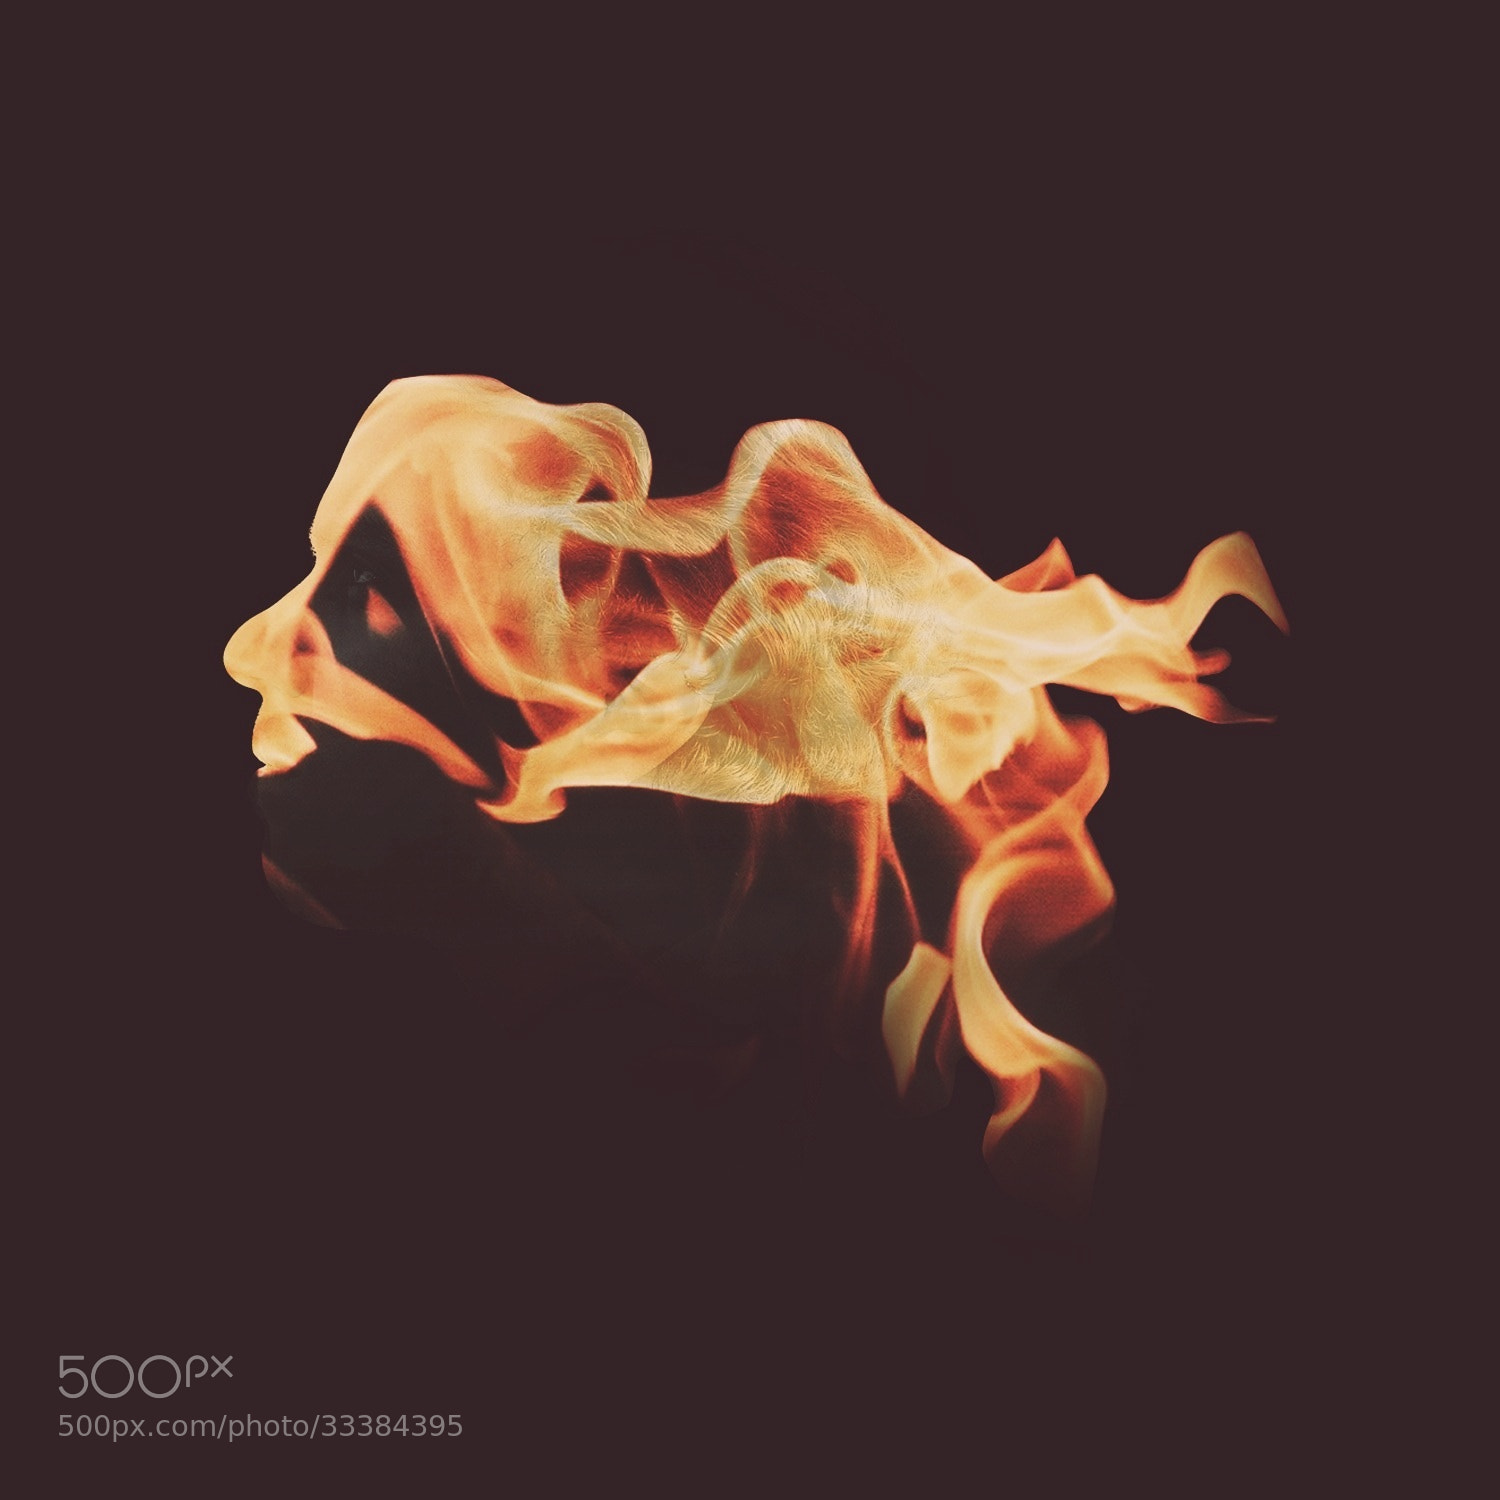 Photograph Man on Fire by yaser almajed on 500px